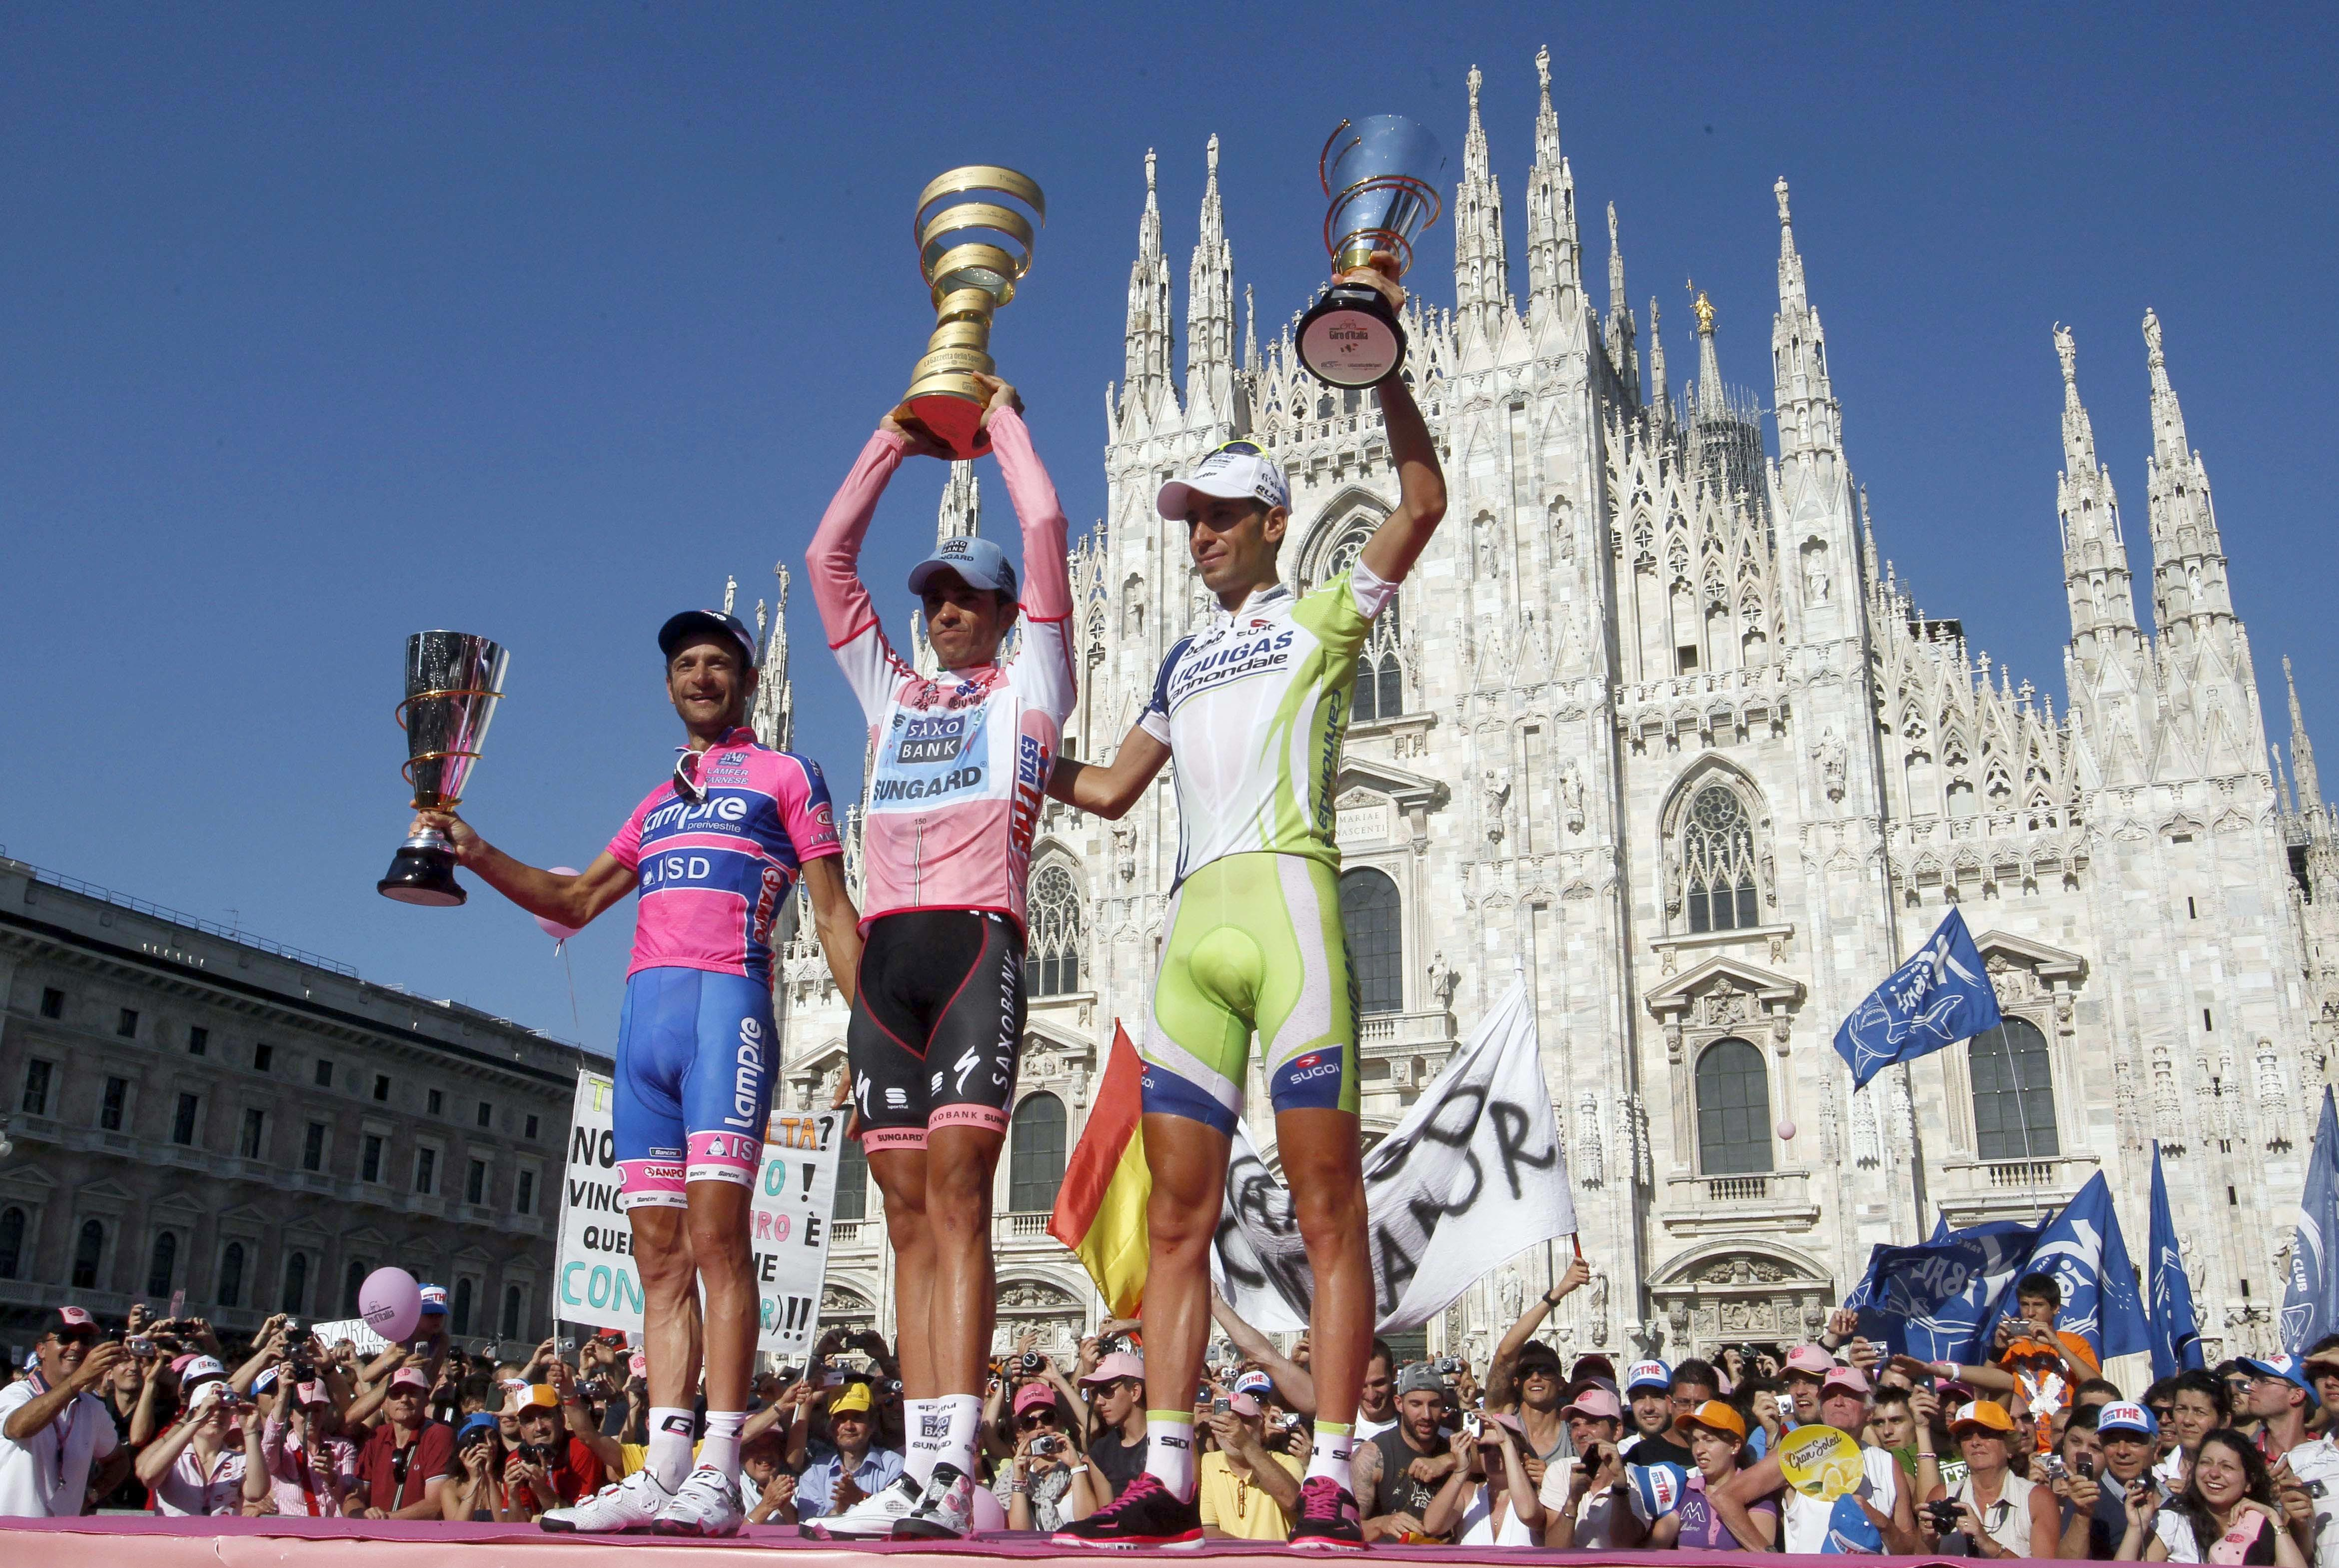 Riders now compete from all over the world in the famous race that takes in 2,200 miles of Italian countryside